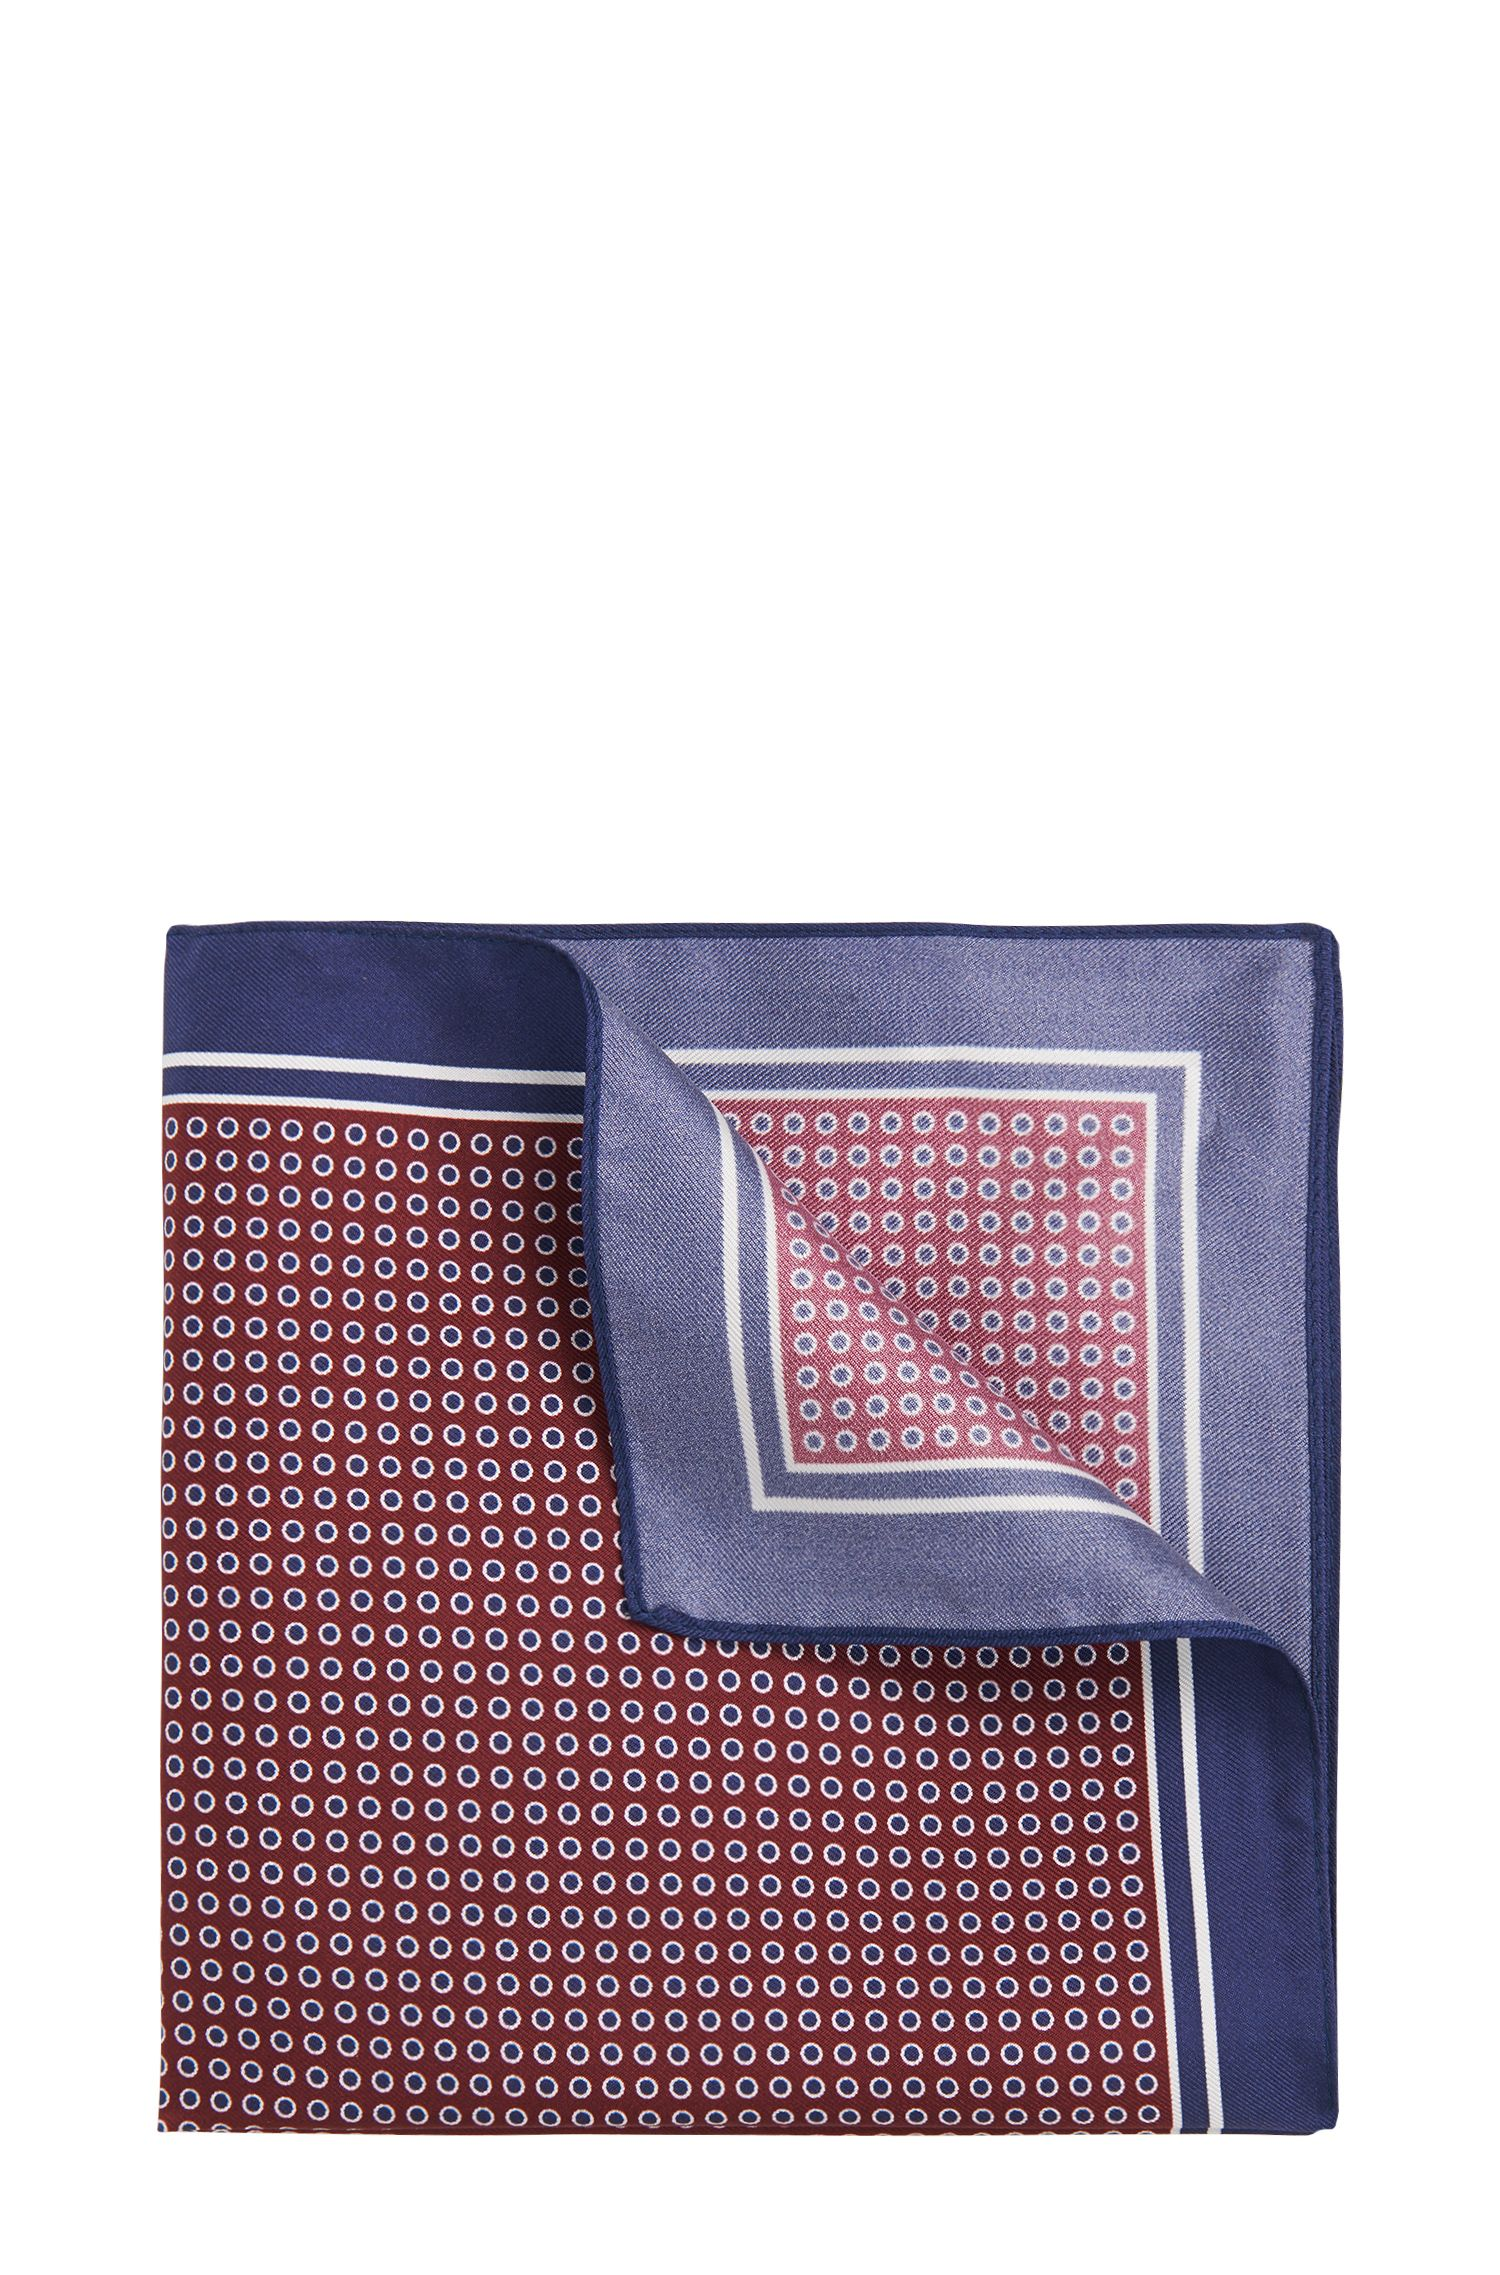 Pochette da taschino a pois in seta: 'Pocket sq. 33 x 33 cm'